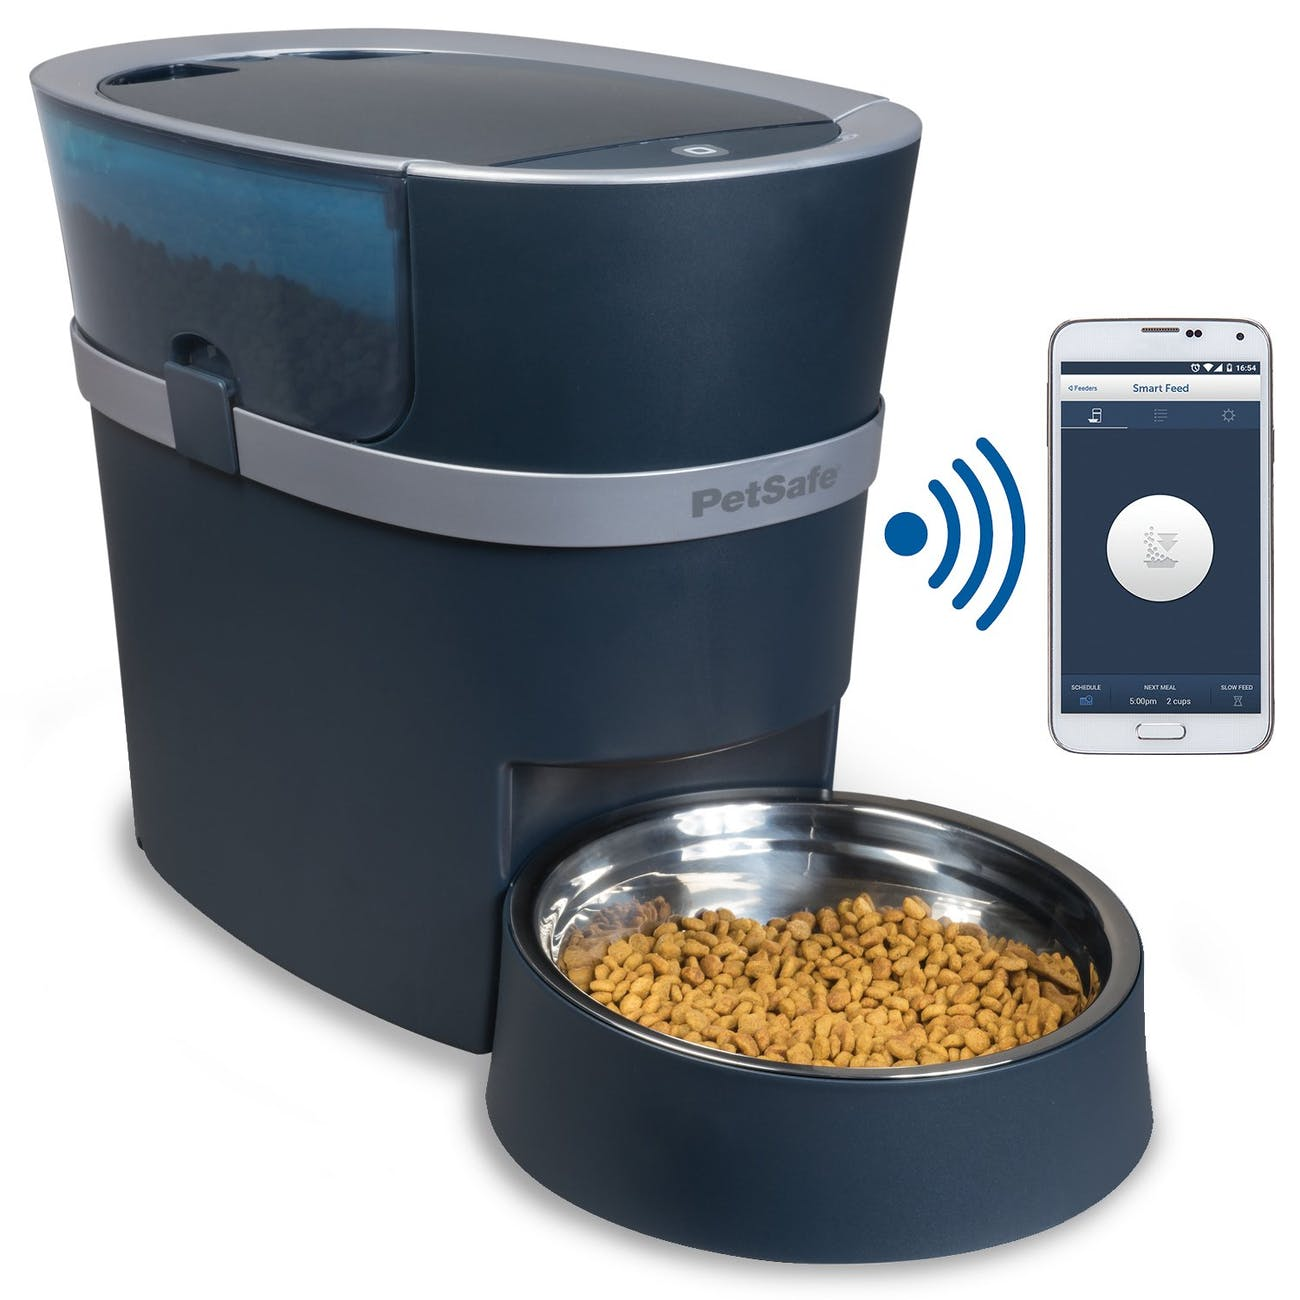 smart home pet, automatic pet feeder, wifi-enabled pet feeder